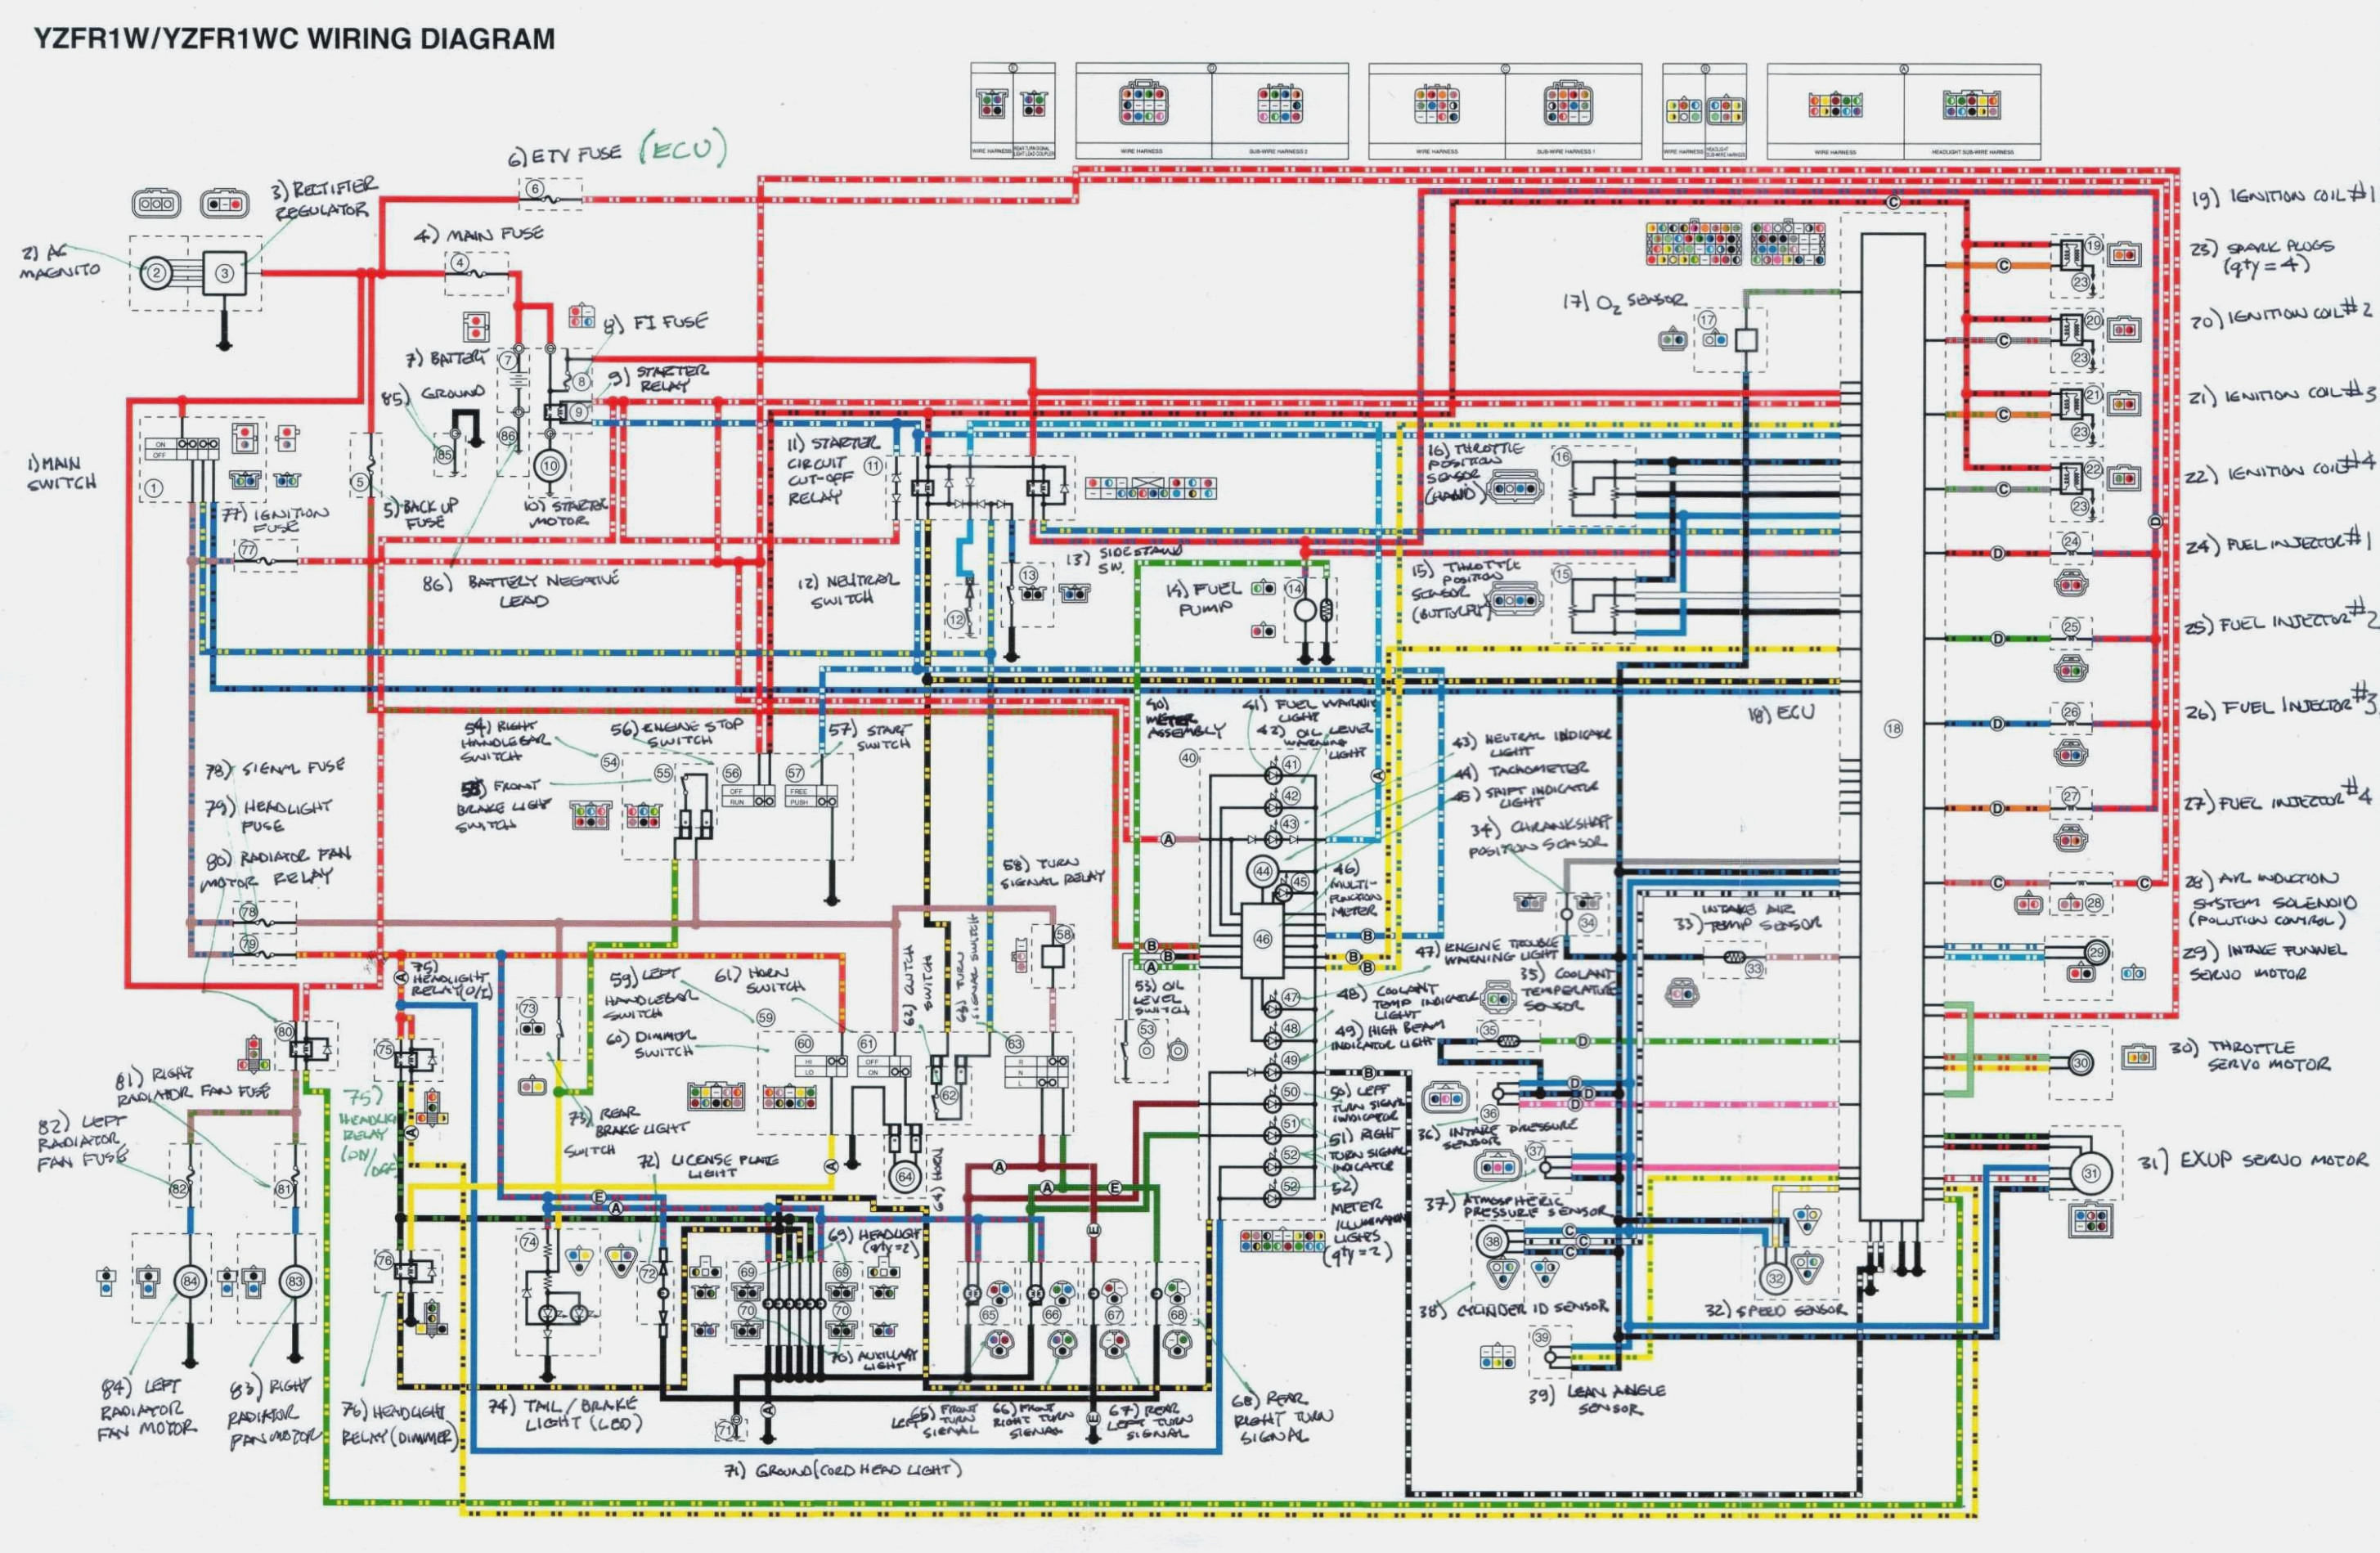 Wiring Diagram For 2009 Yamaha Grizzly - Wiring Diagram Recent bored-room -  bored-room.cosavedereanapoli.it | 2007 Yamaha 125 Grizzly Wiring Diagram |  | bored-room.cosavedereanapoli.it